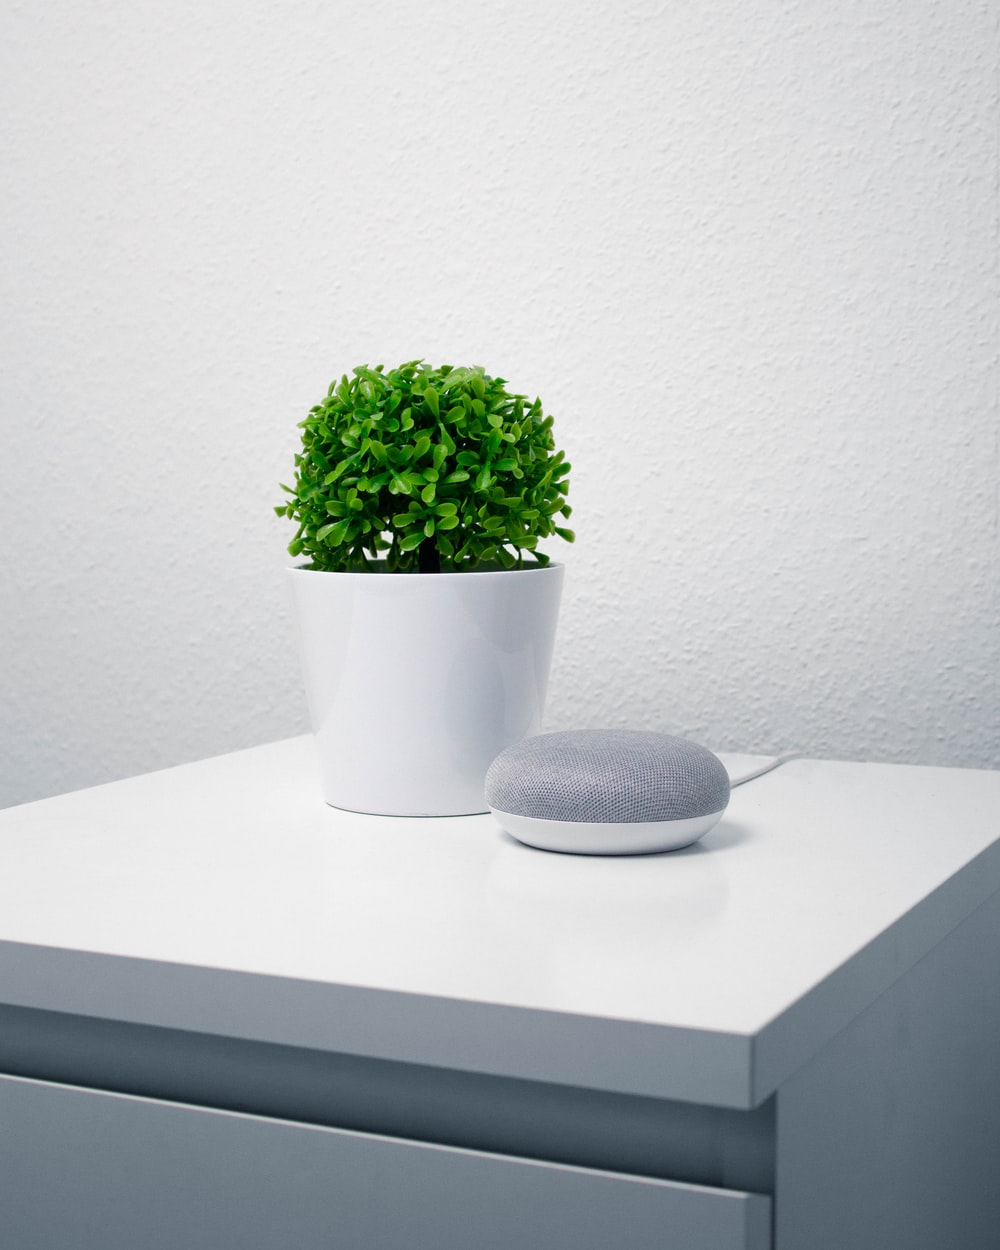 Fine Google Home Pod With Plant Hd Photo By Niclas Illg Download Free Architecture Designs Scobabritishbridgeorg